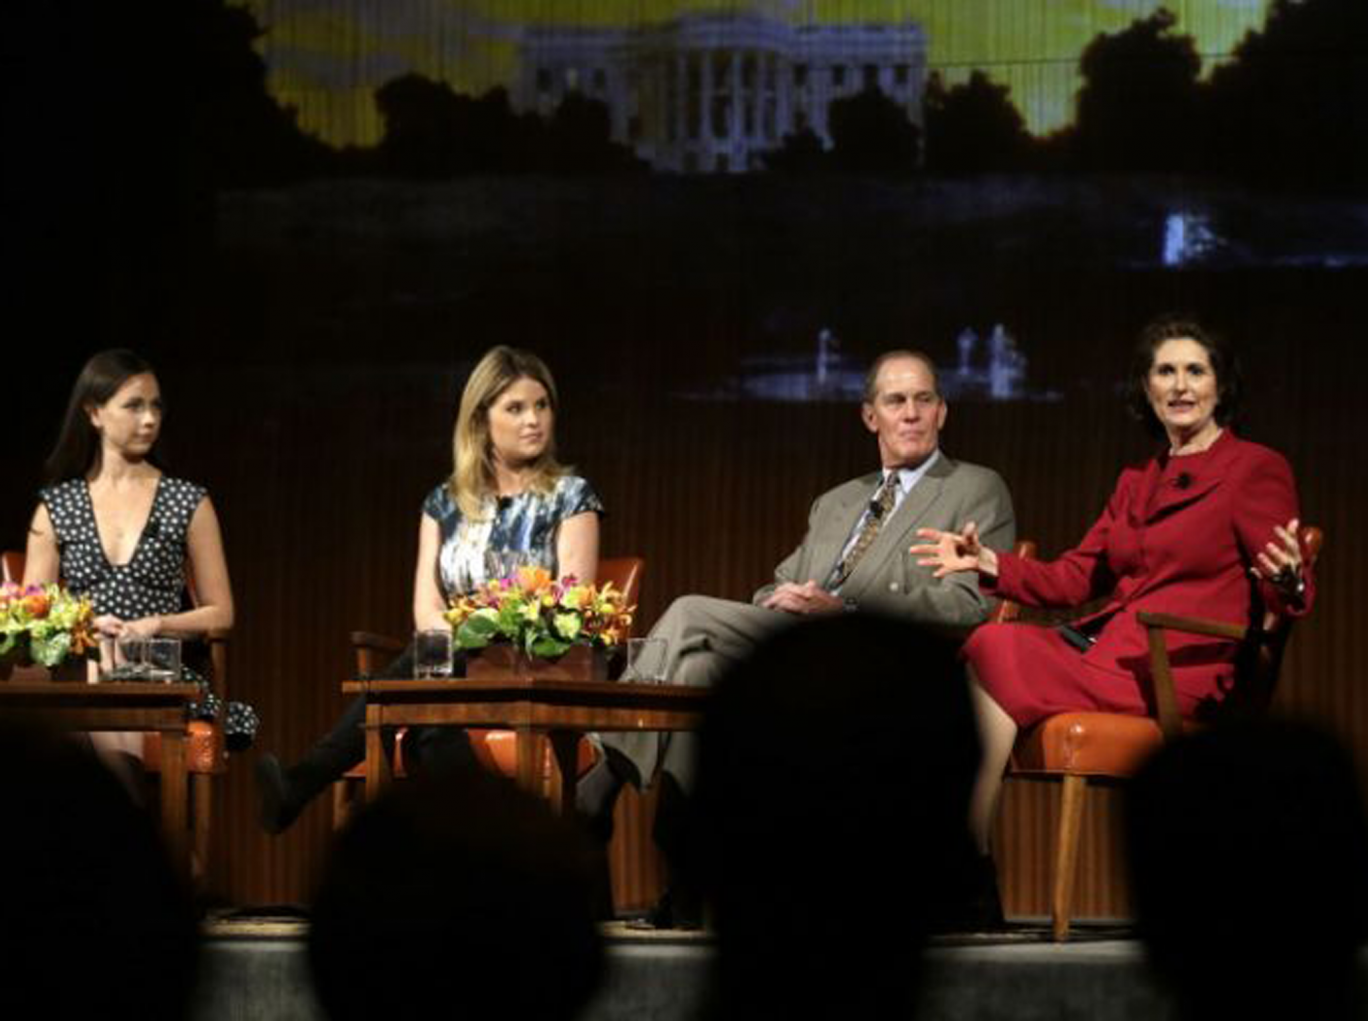 Jenna Bush Hager and Steven Ford at the panel in Texas